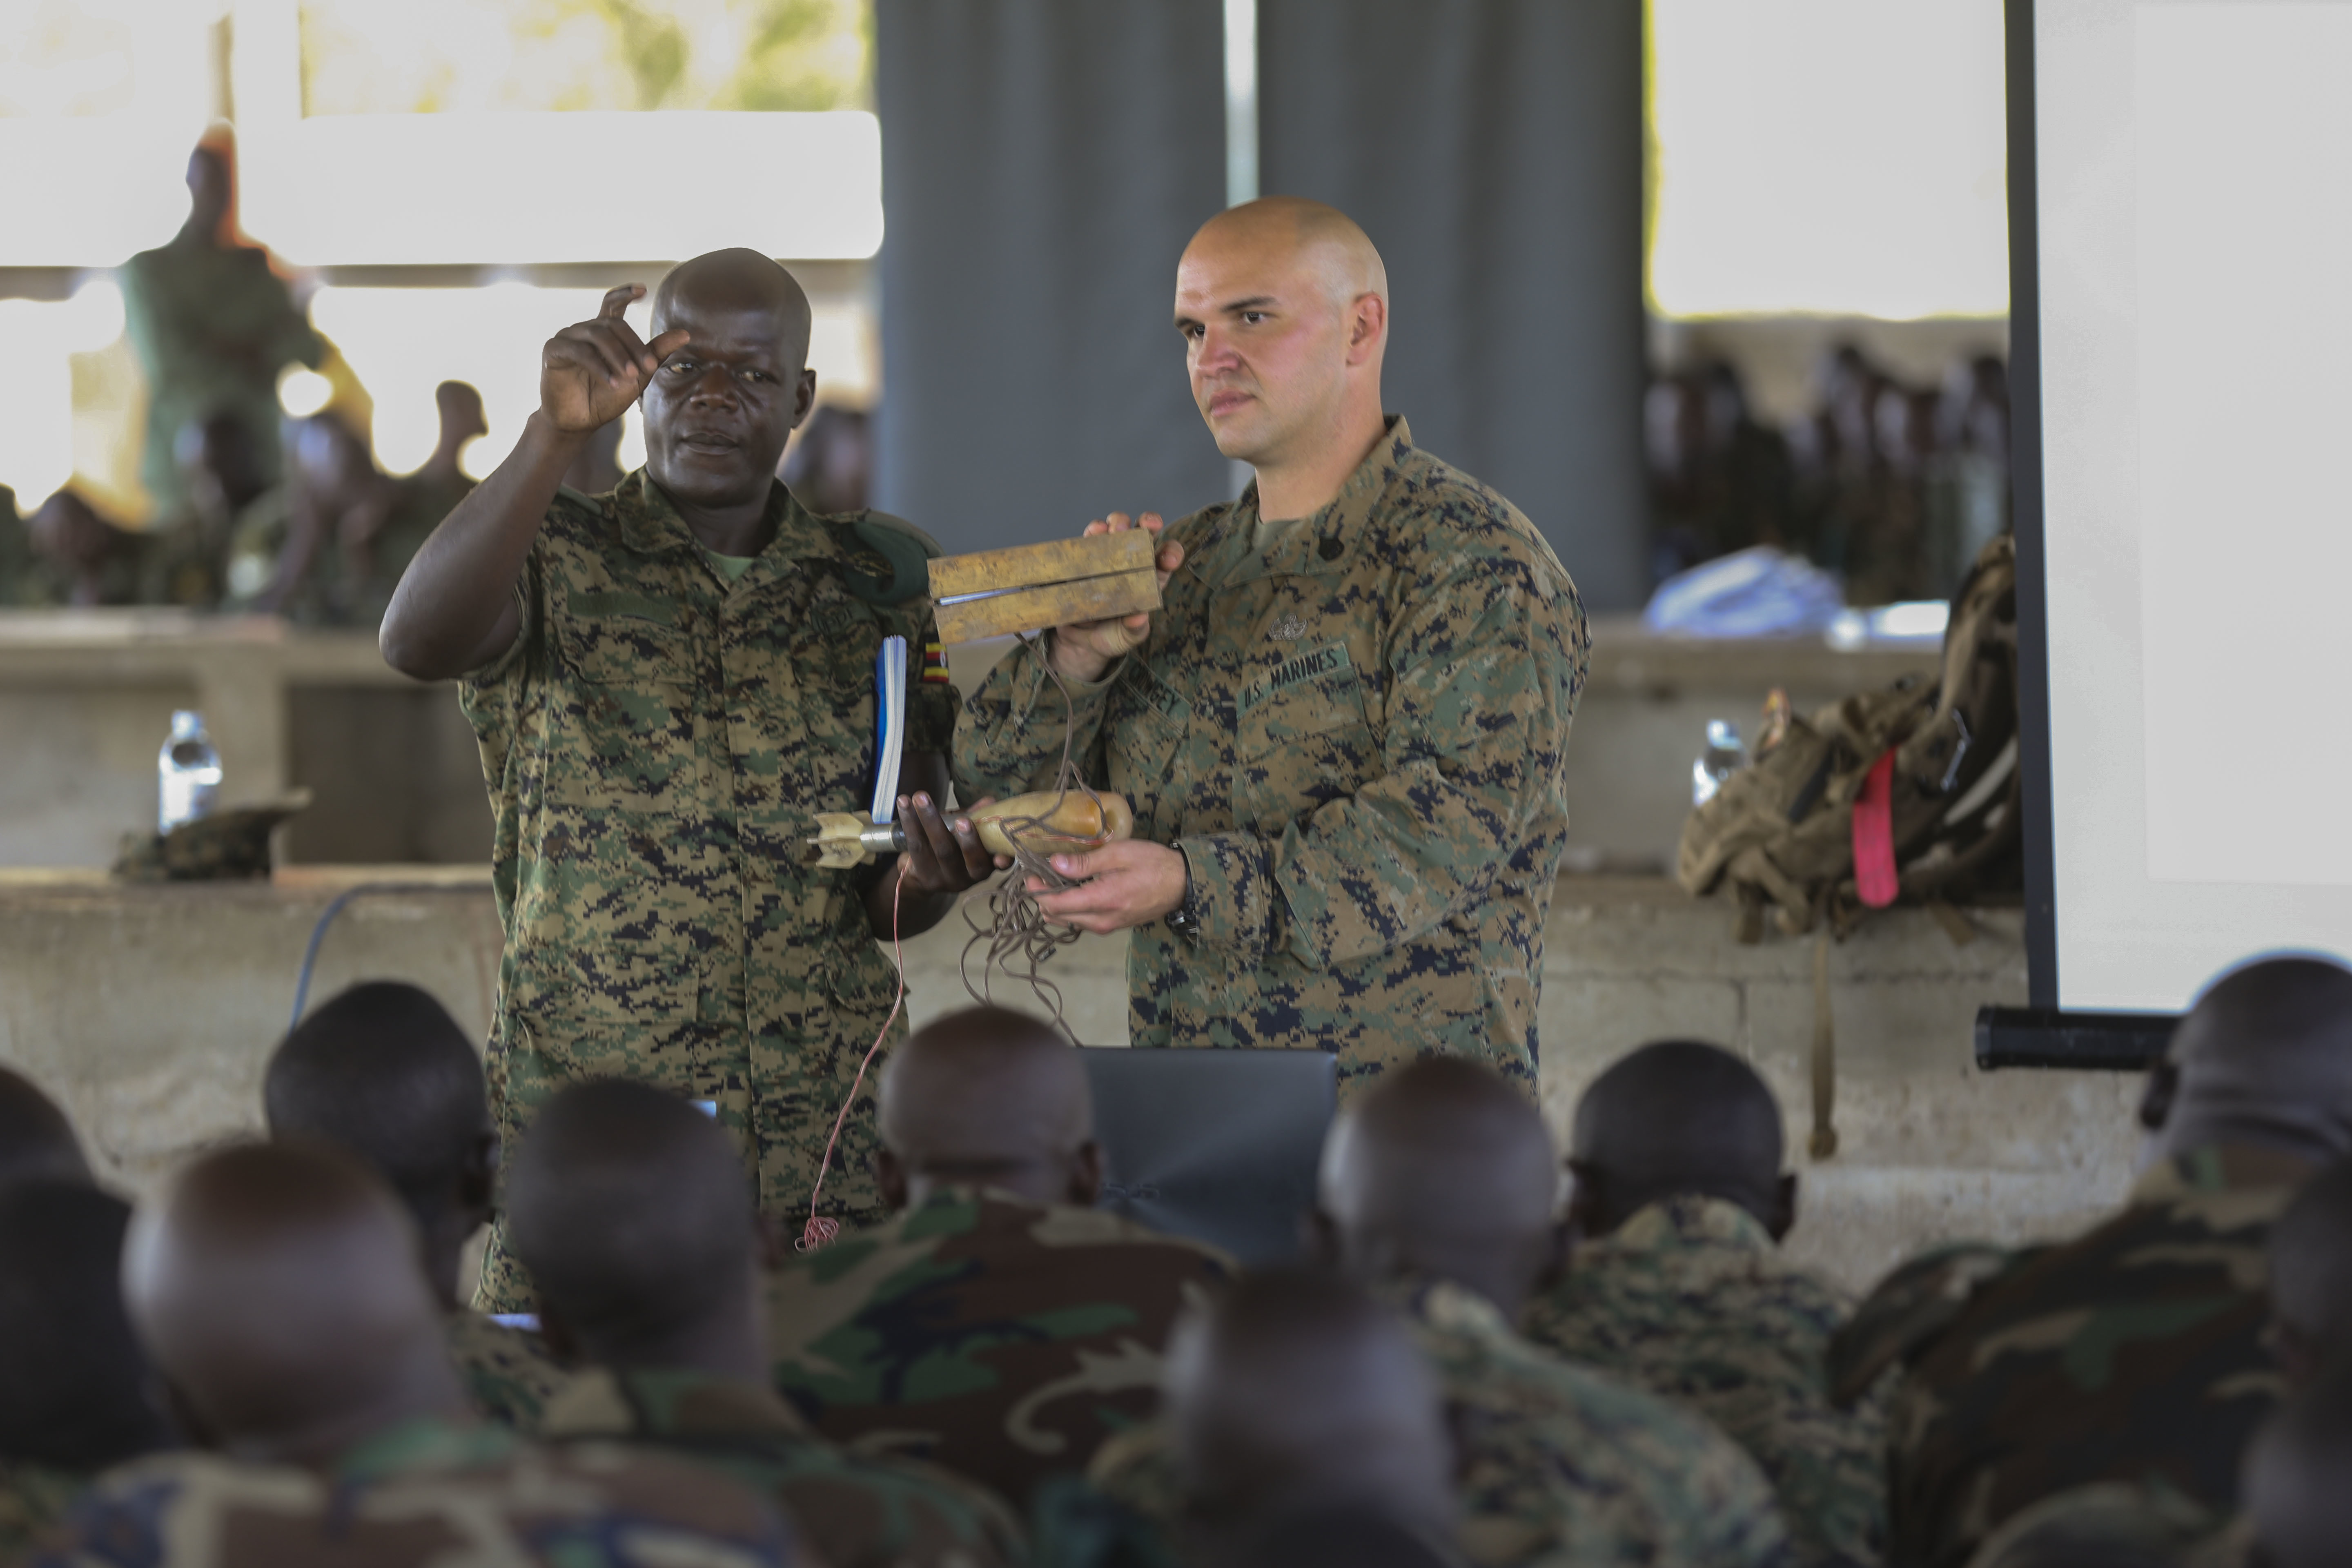 U.S. Marine Staff Sgt. Evan Crowgey, an explosive ordnance disposal technician with Special-Purpose Marine Air-Ground Task Force Crisis Response-Africa, conducted an improvised explosive device awareness class with the Uganda People's Defense Force at Camp Singo, Uganda, Nov. 2, 2015. Marines and sailors with SPMAGTF-CR-AF are training with the UPDF to increase engineering and logistical capabilities while strengthening the bonds between the partner counties. (U.S. Marine Corps photo by Cpl. Olivia McDonald/Released)